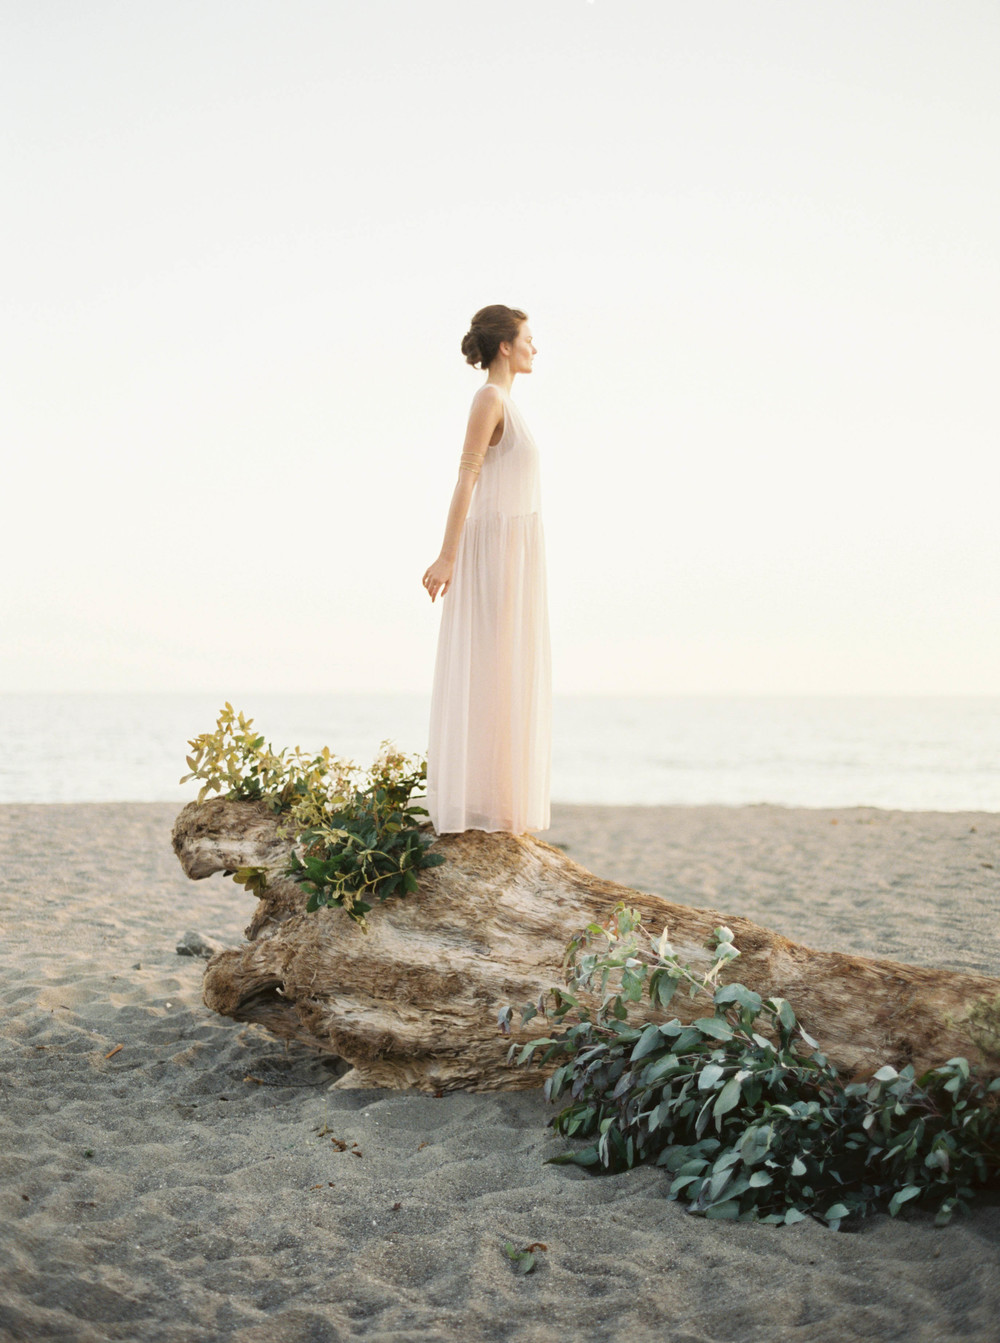 Meghan Mehan Fine Art Photography - Elk, California - Beach Bridal_Chloe - 020.jpg